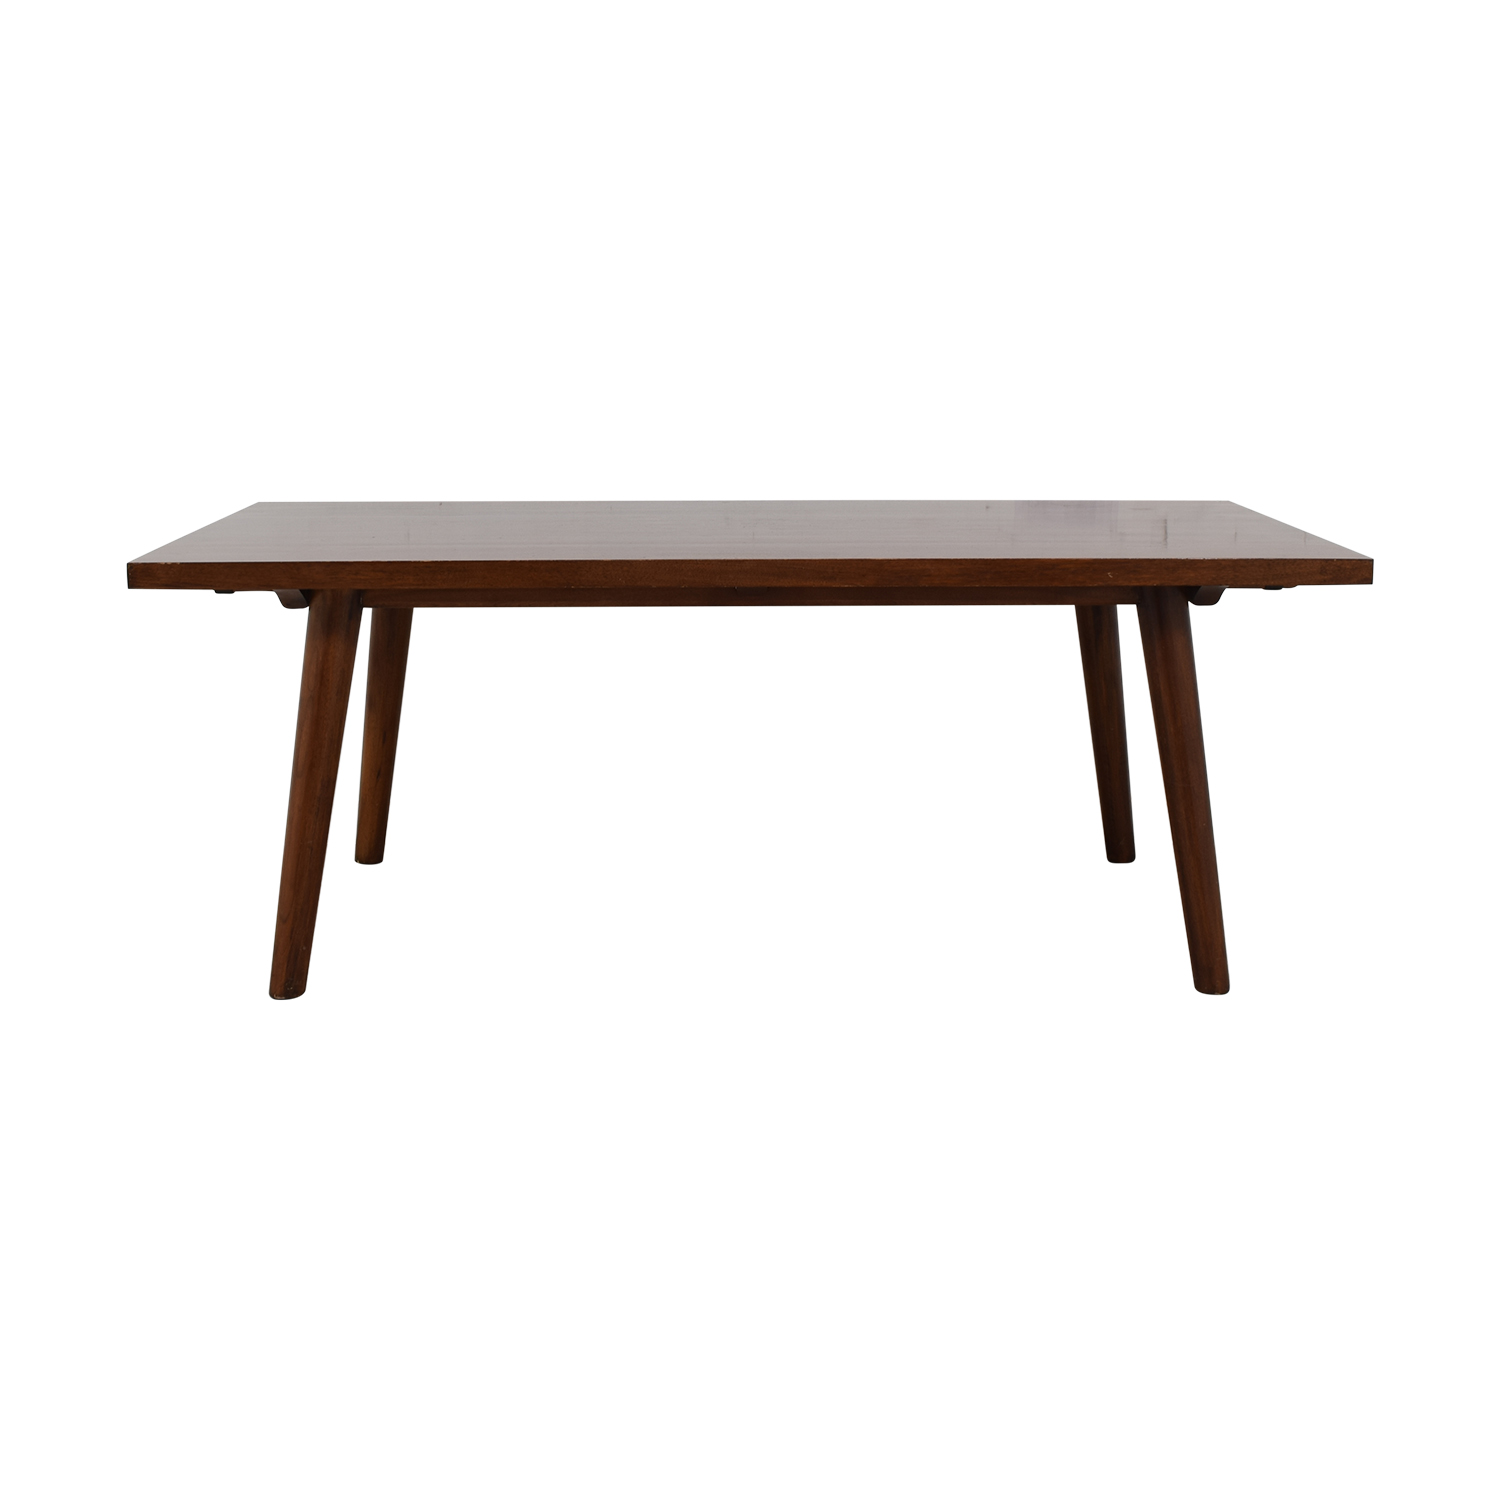 Room & Board Room & Board Extendable Dining Table second hand